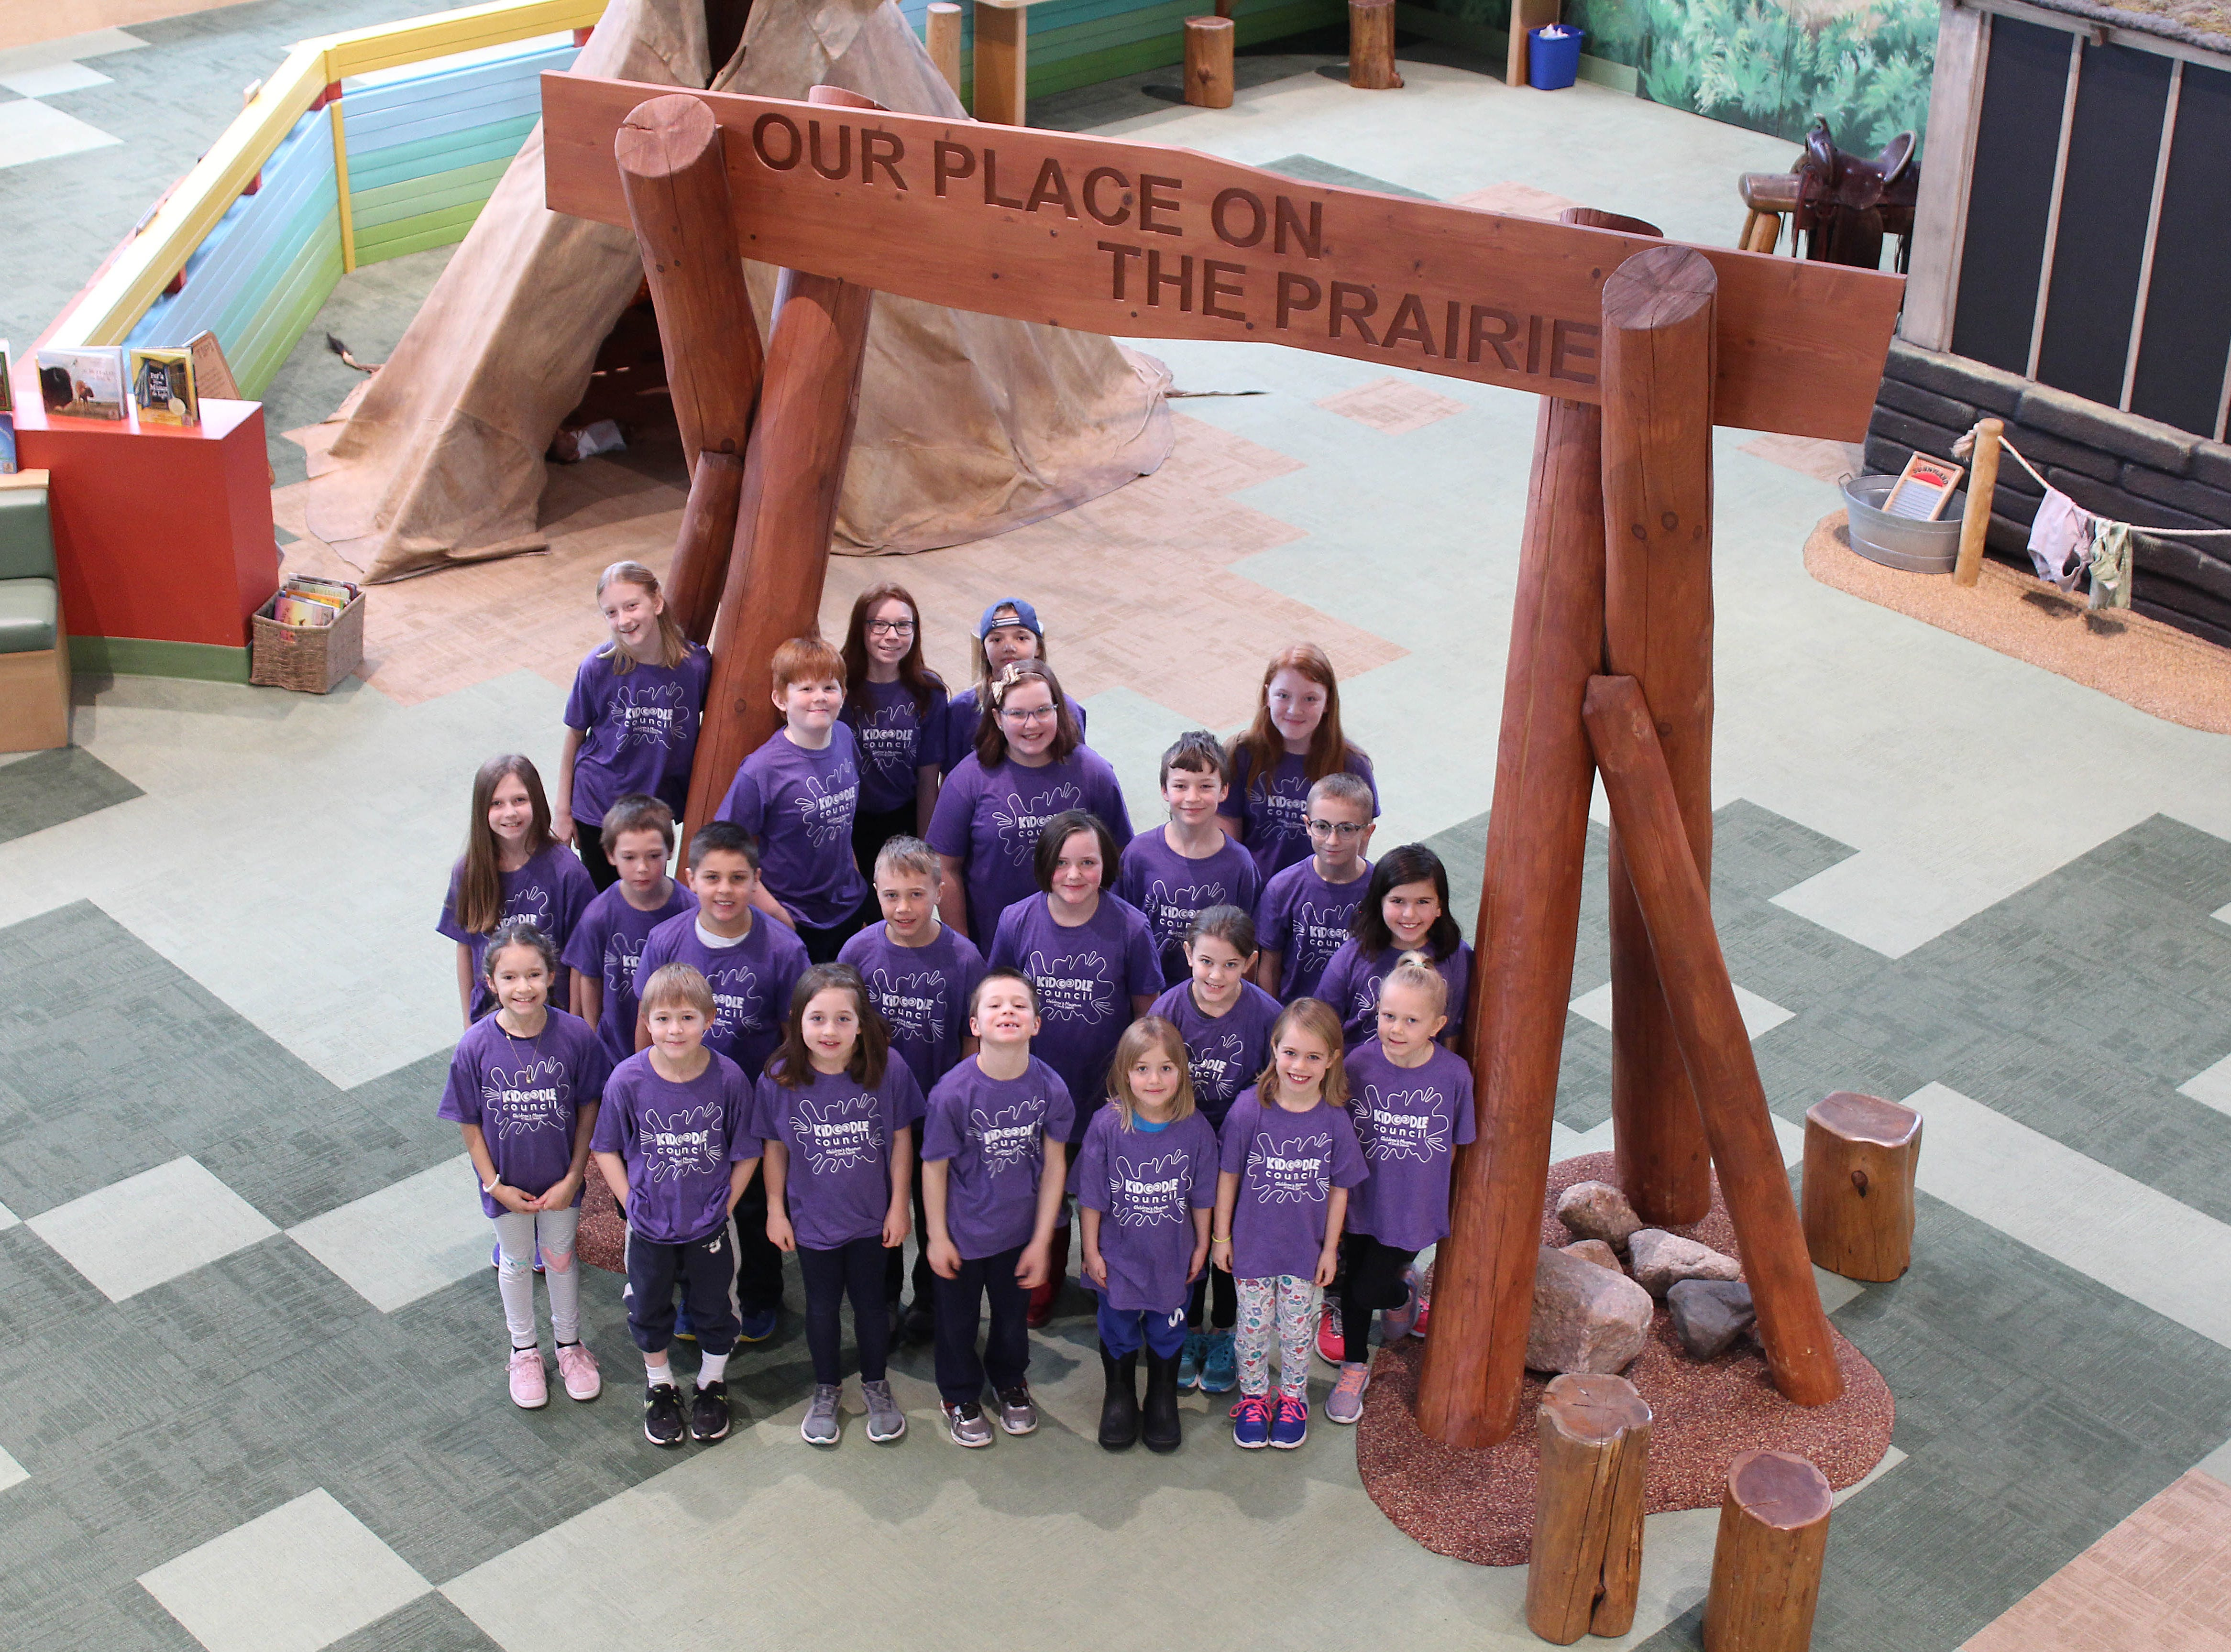 The Kidoodle Council, the Children's Museum of South Dakota's recently formed youth advisory board.